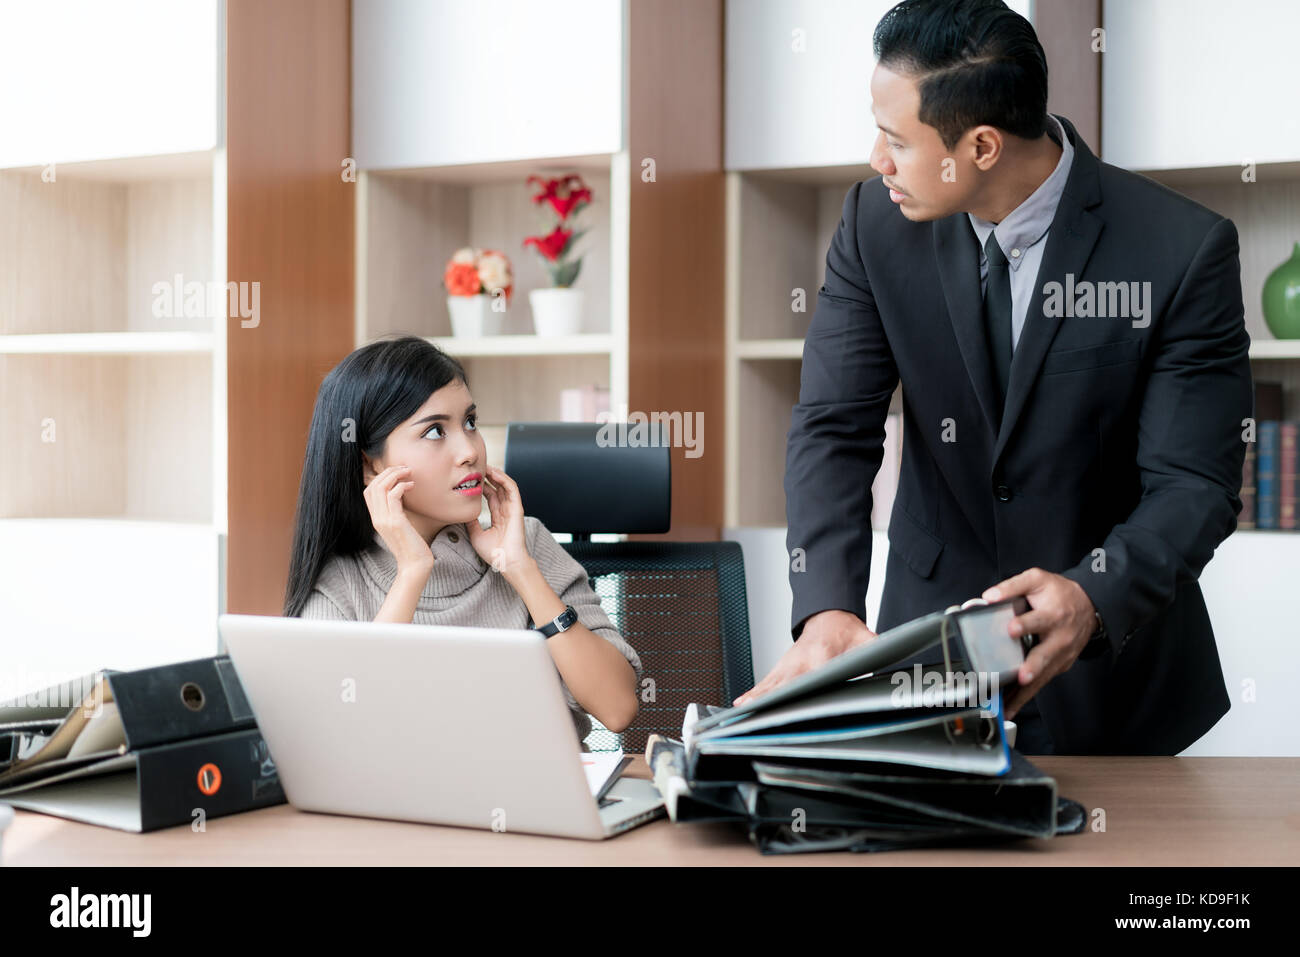 Anger businessman manager taking folders on his subordinate table. Businesswoman under stress due to excessive work. - Stock Image